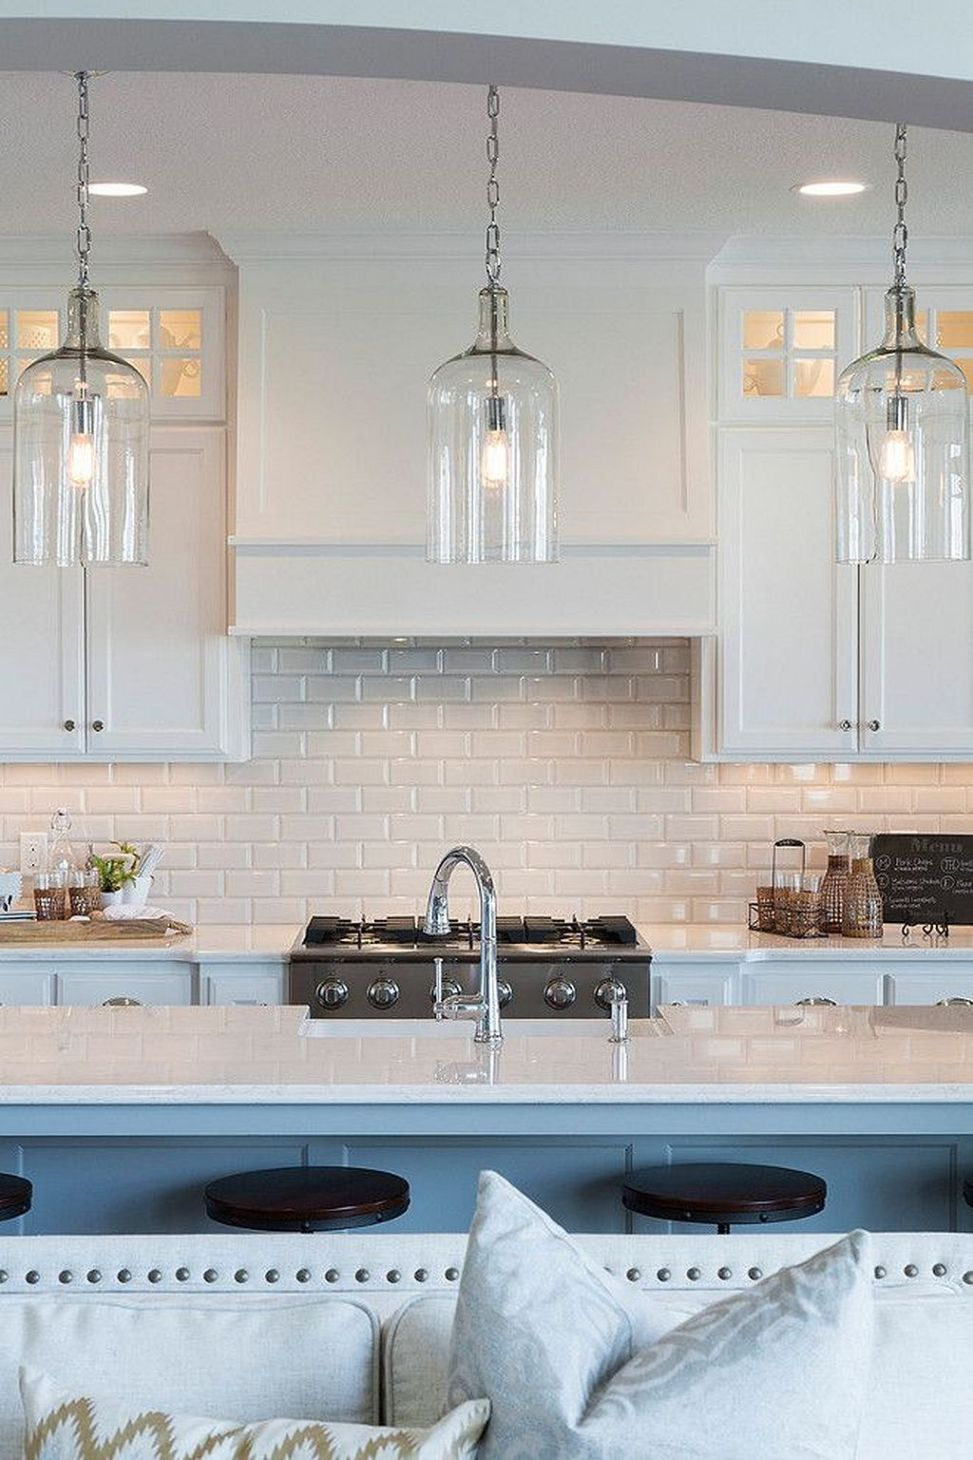 Love This Kitchen Island Lighting Ideas For The Home - Kitchen island lighting ideas pinterest